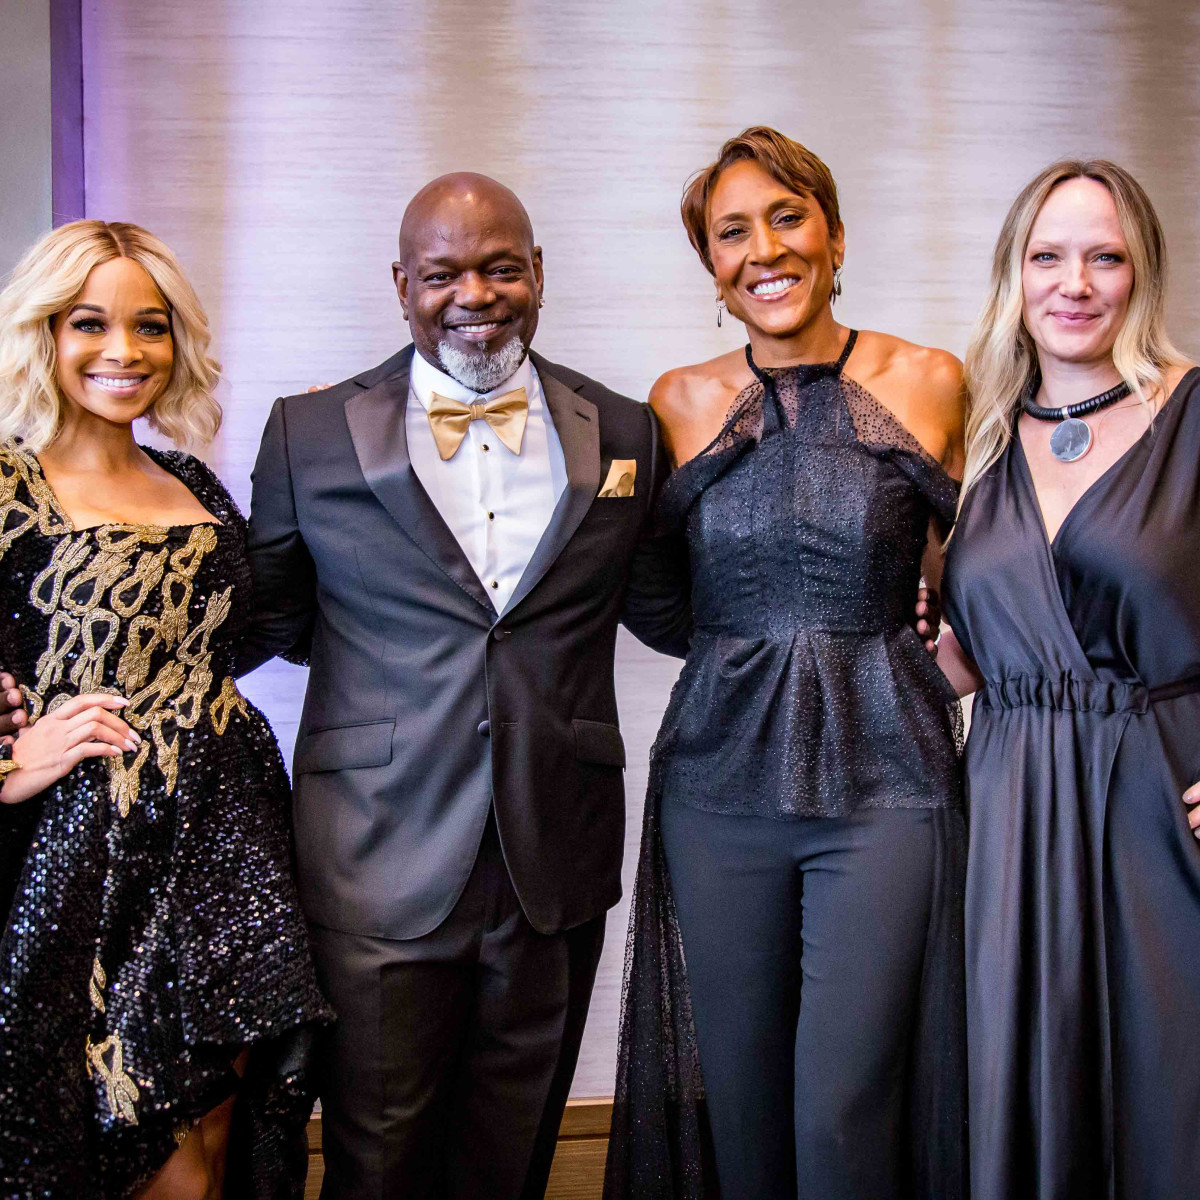 Pat Smith, Emmitt Smith, Robin Roberts, Amber Laign